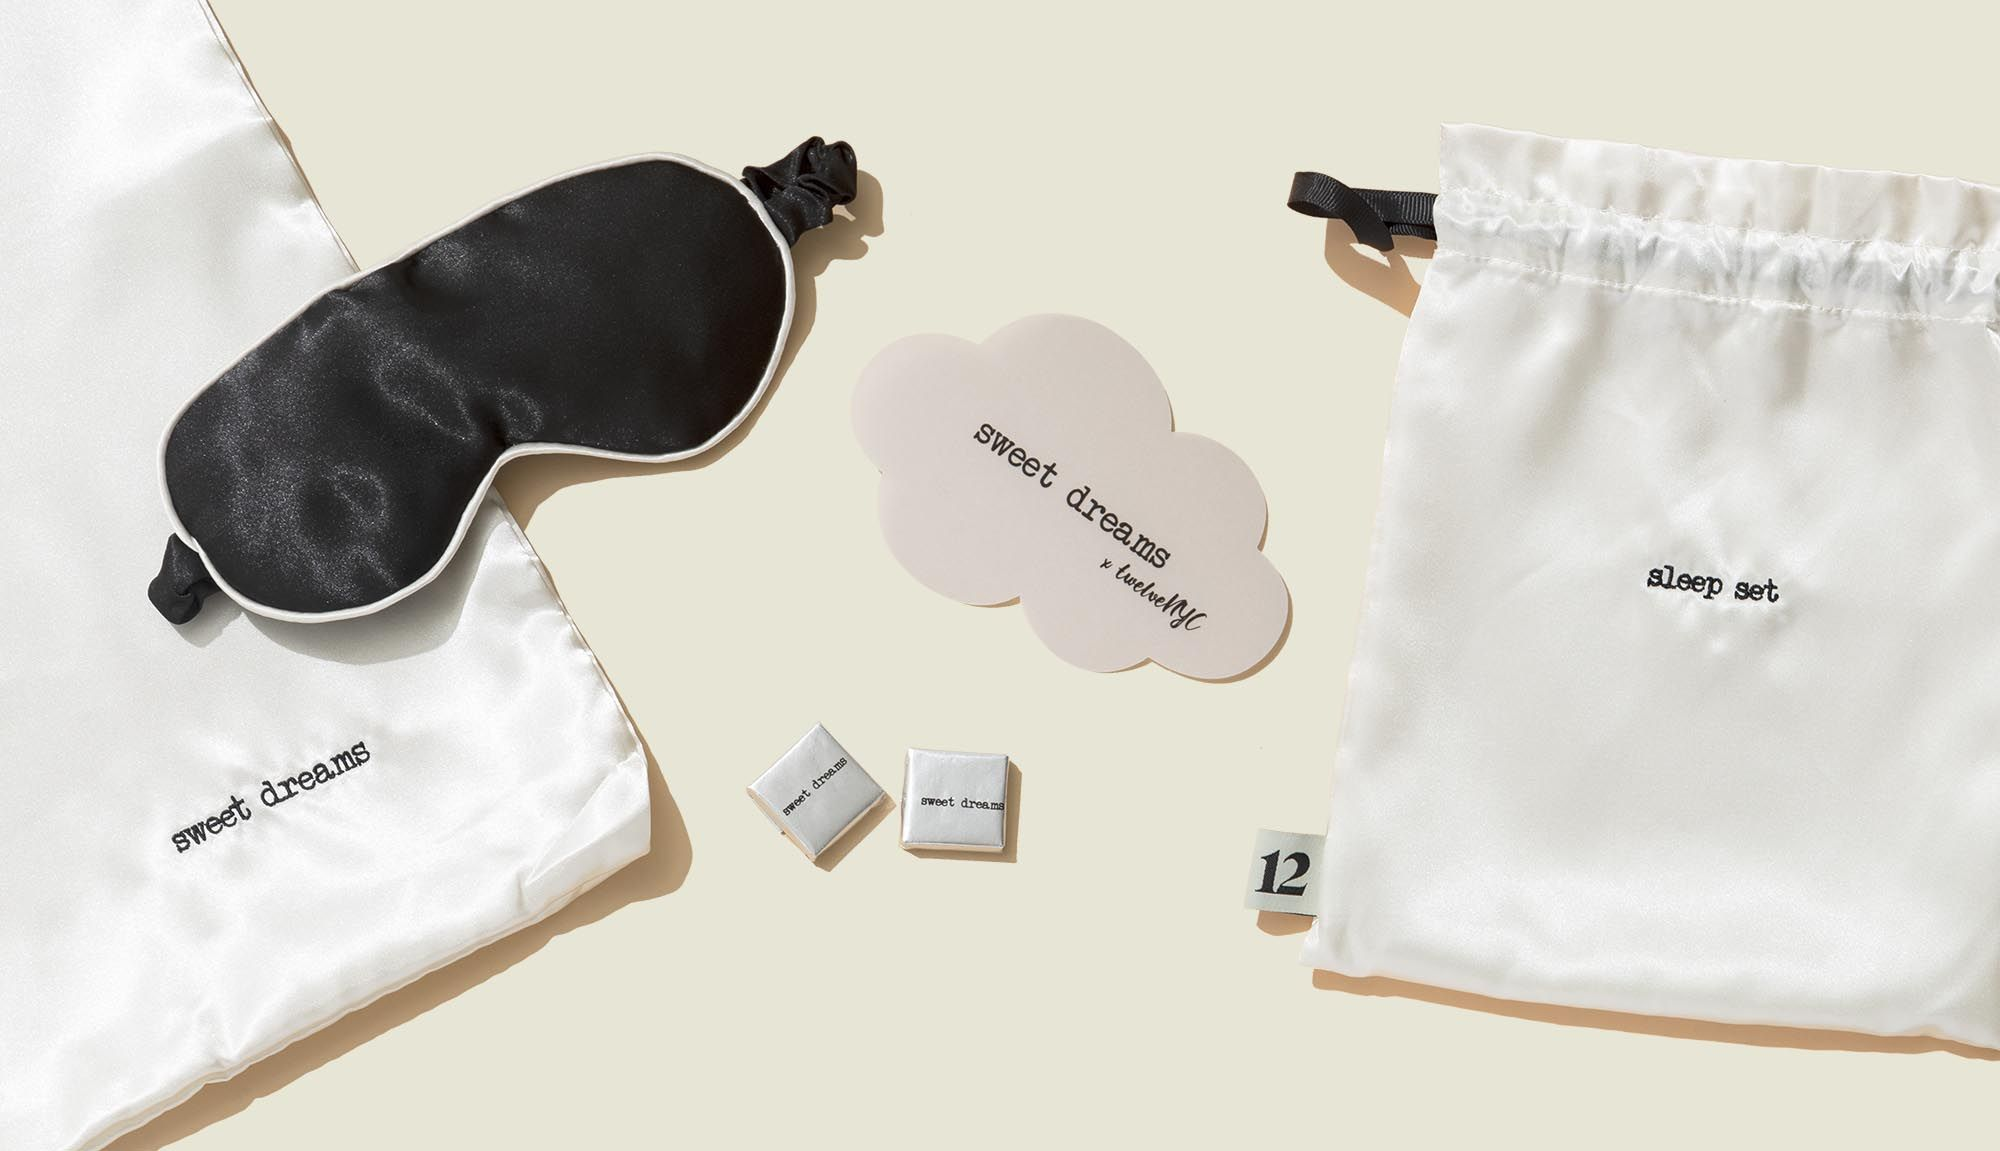 Drawstring pouch with sleep mask